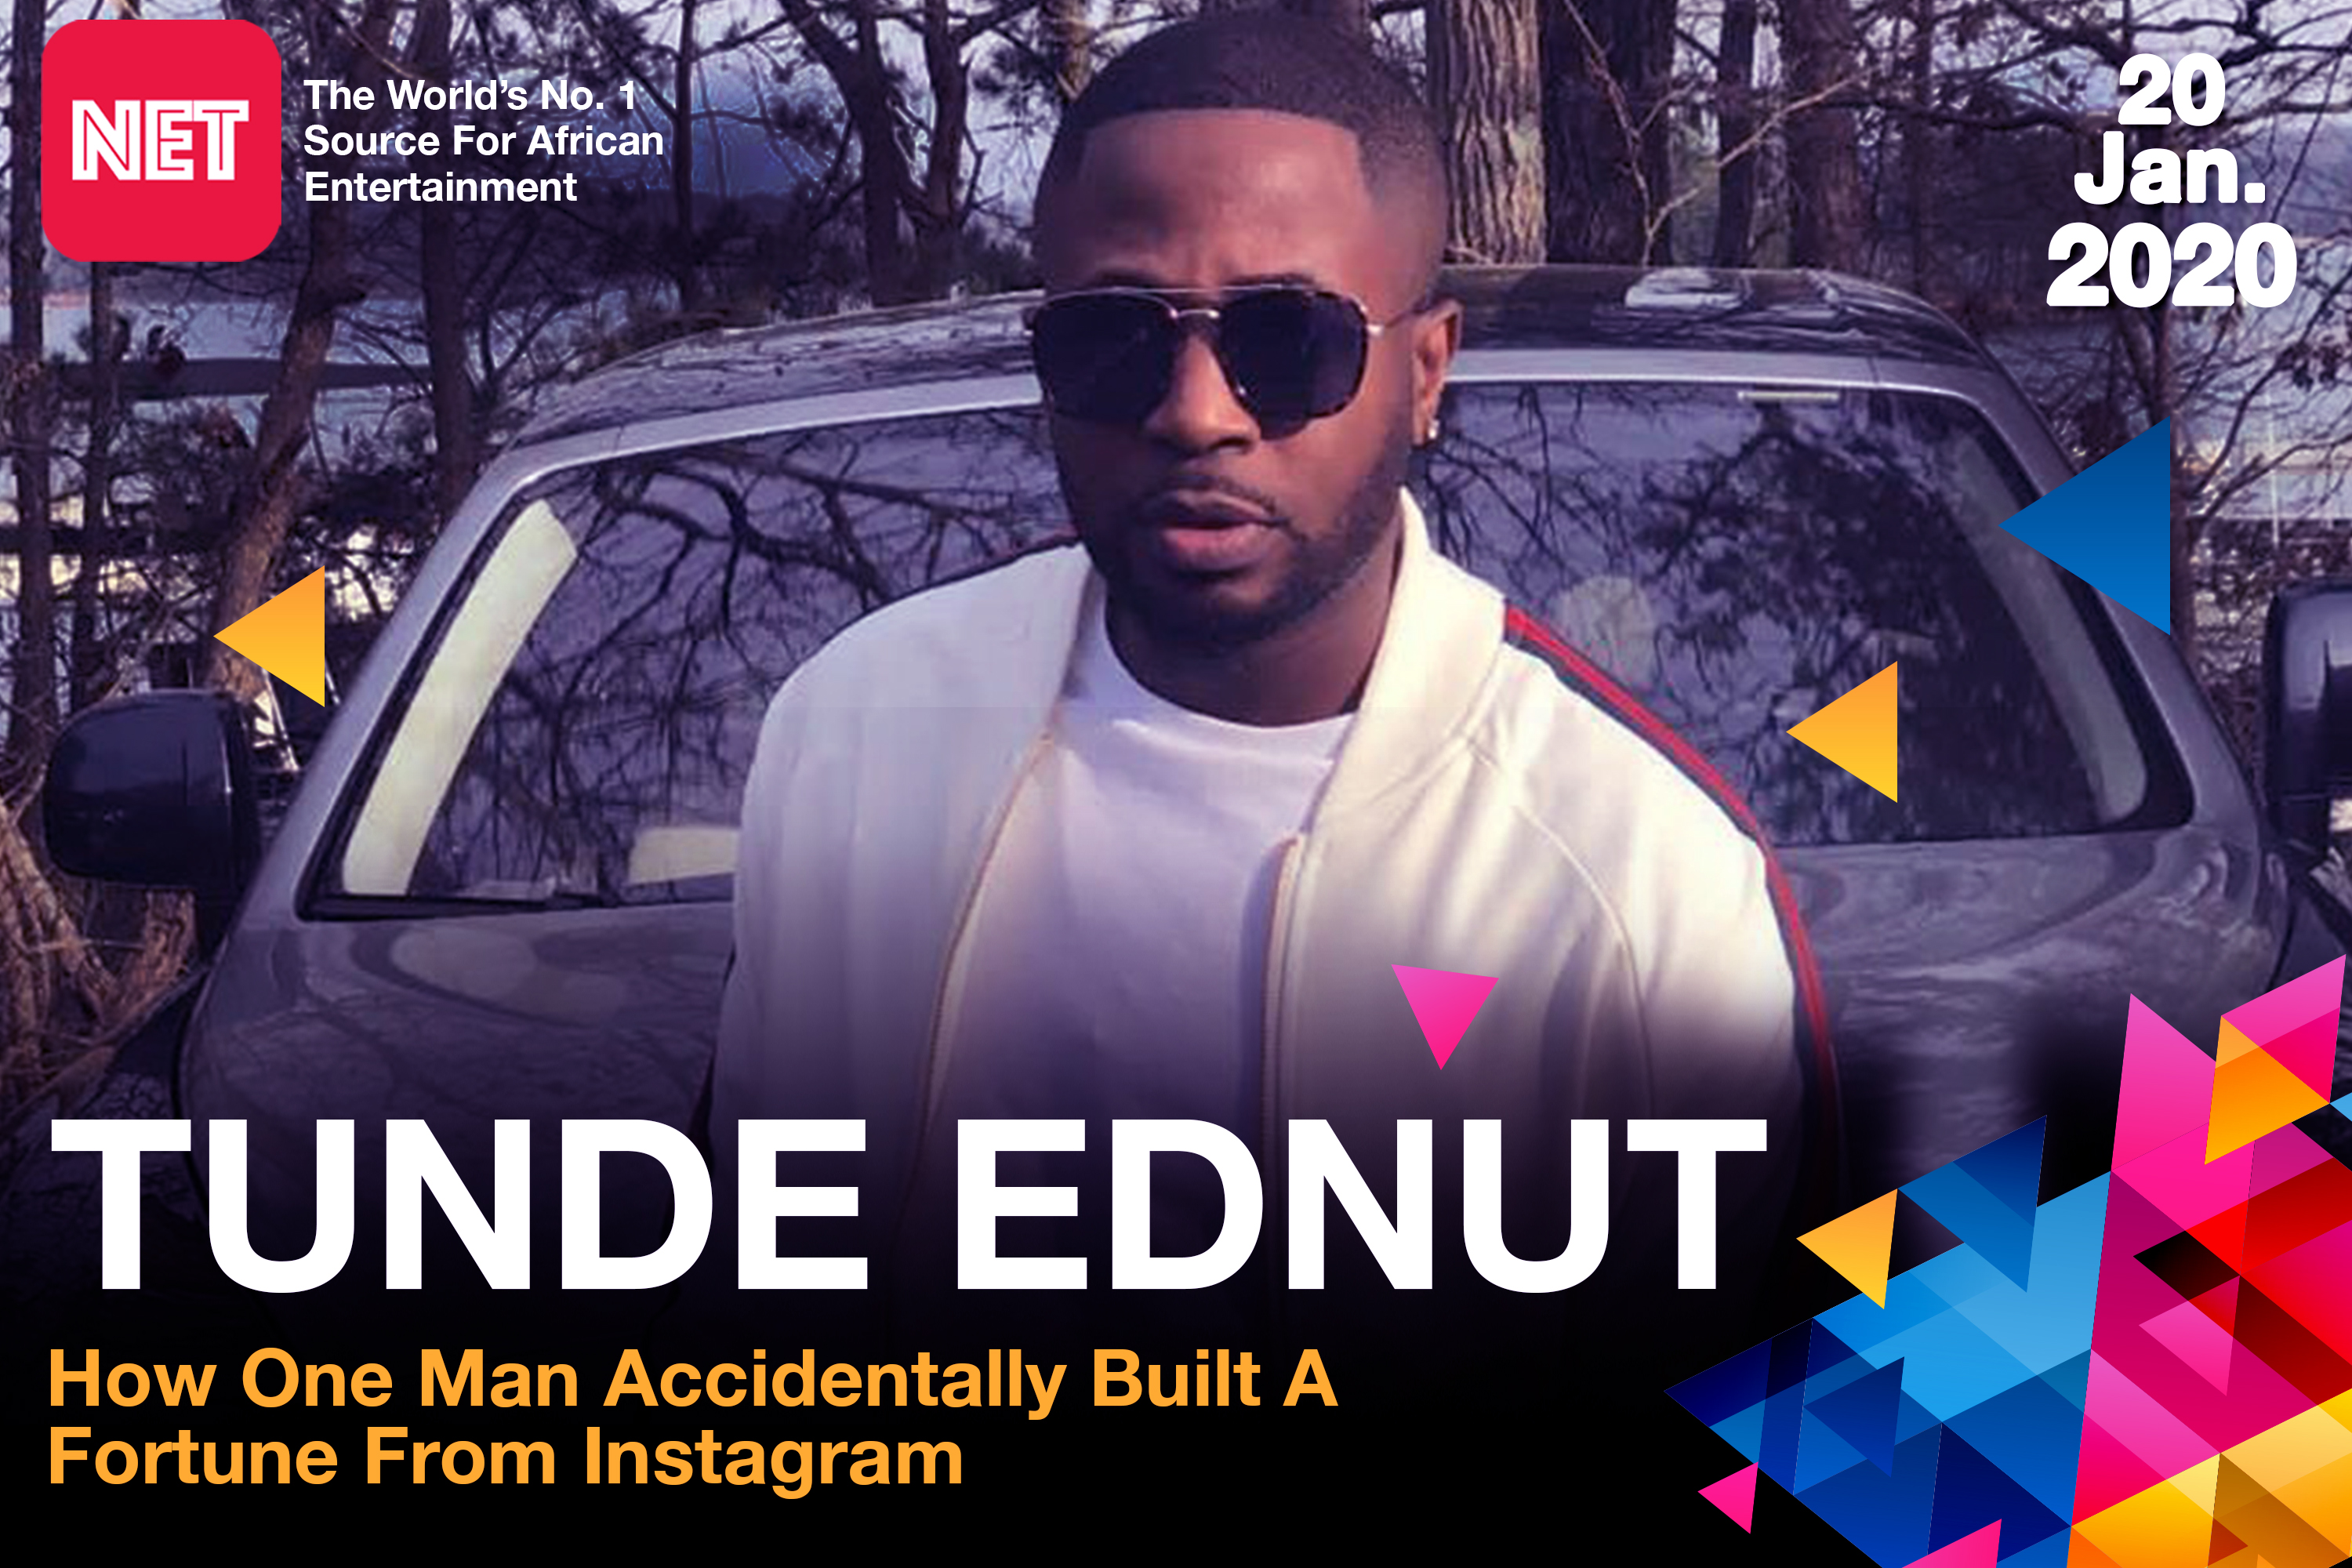 How Tunde Ednut accidentally built a fortune from Instagram